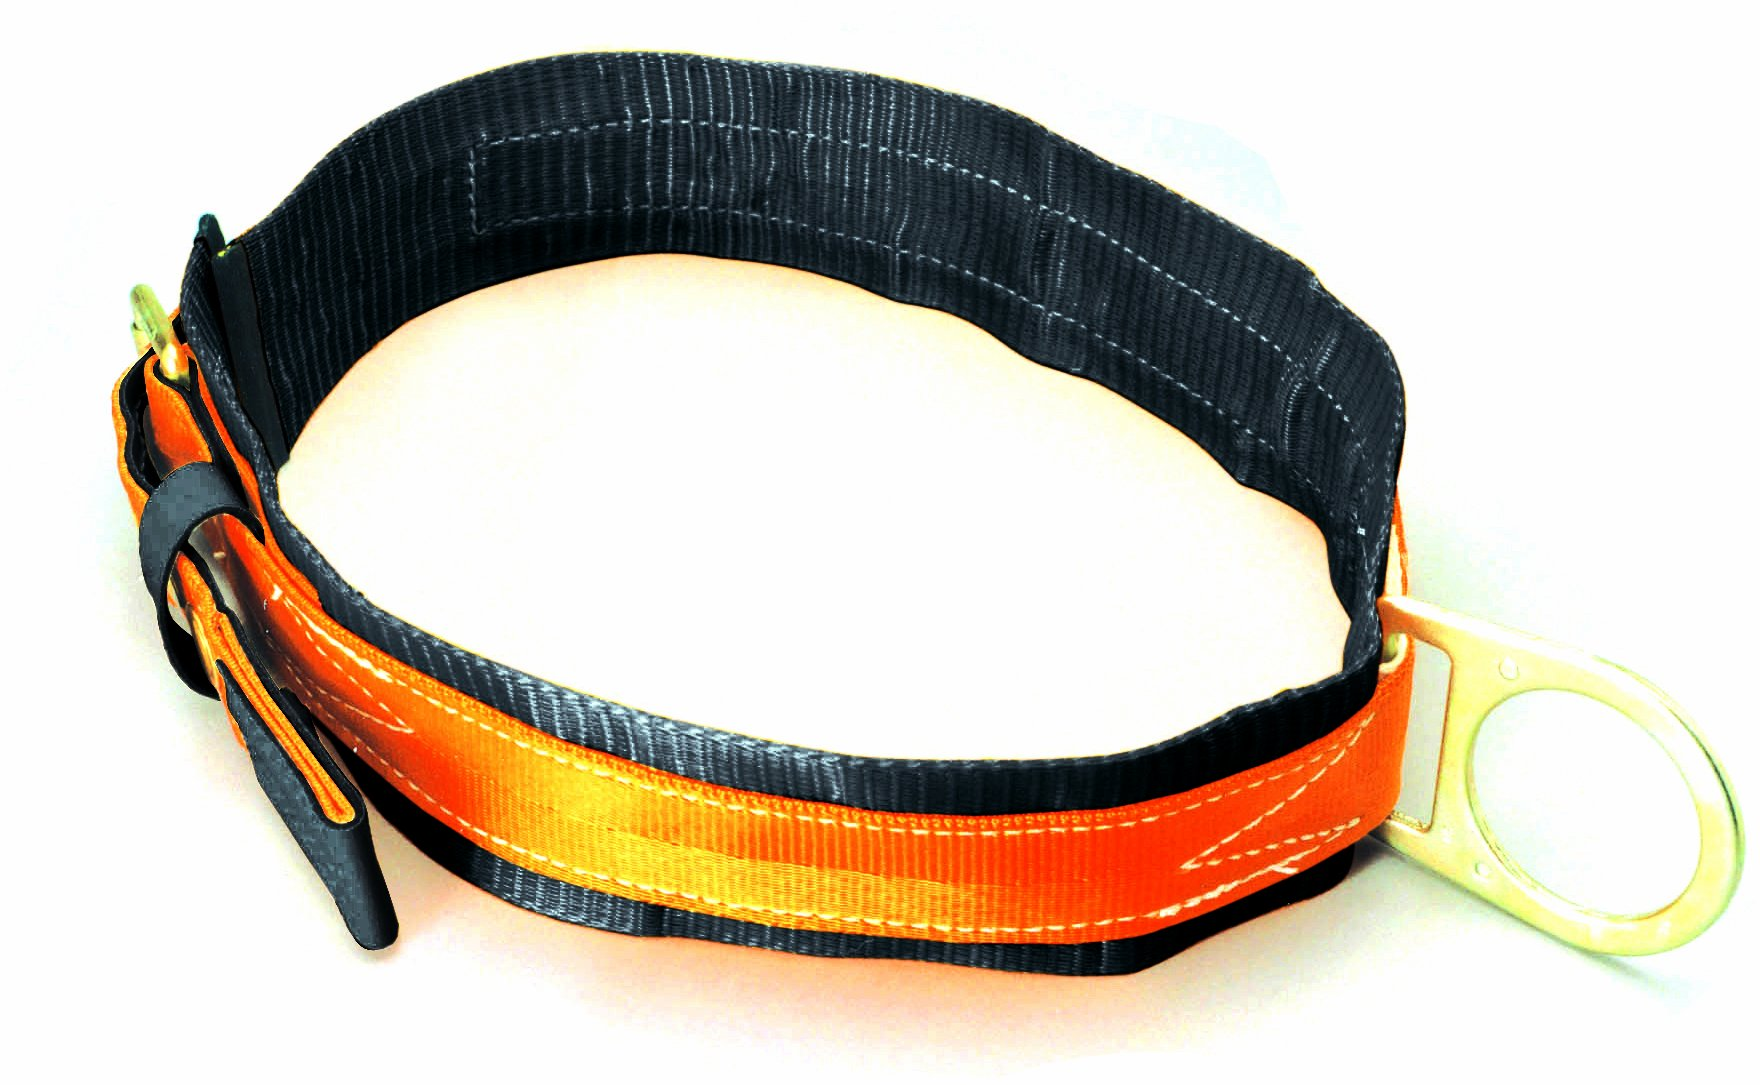 Miller Titan by Honeywell T3310/MAF Tongue Buckle Body Belt with Single D-Ring and 3-Inch Back Pad, Medium by Honeywell